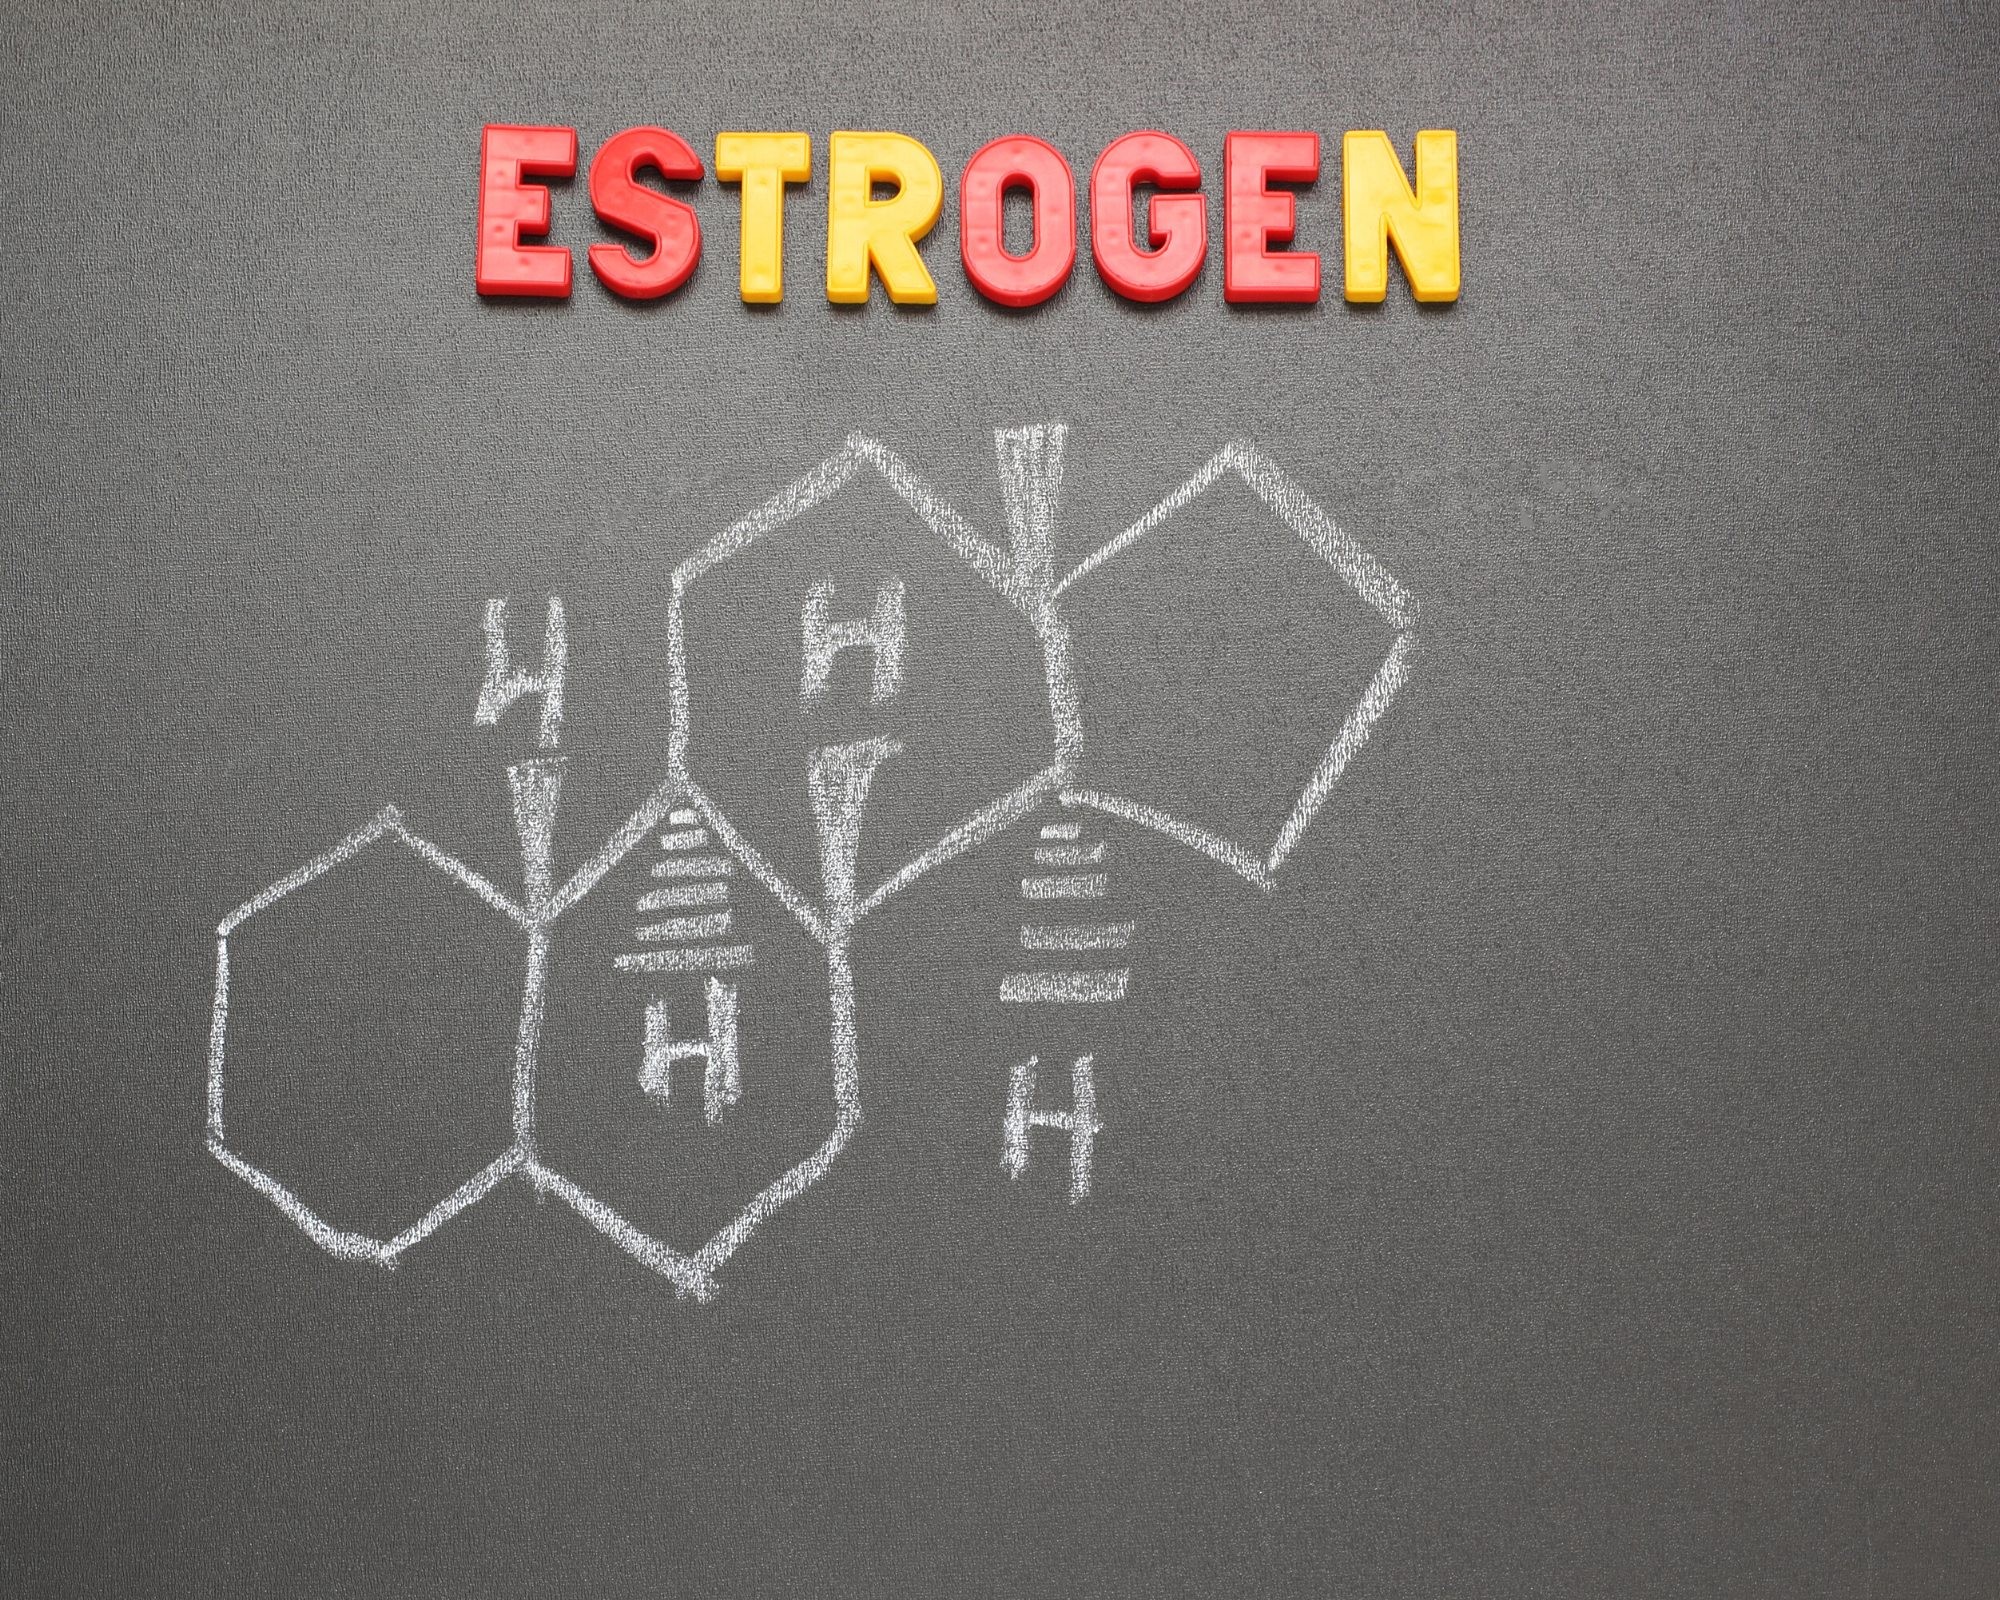 Image showing the chemical structure of estrogen